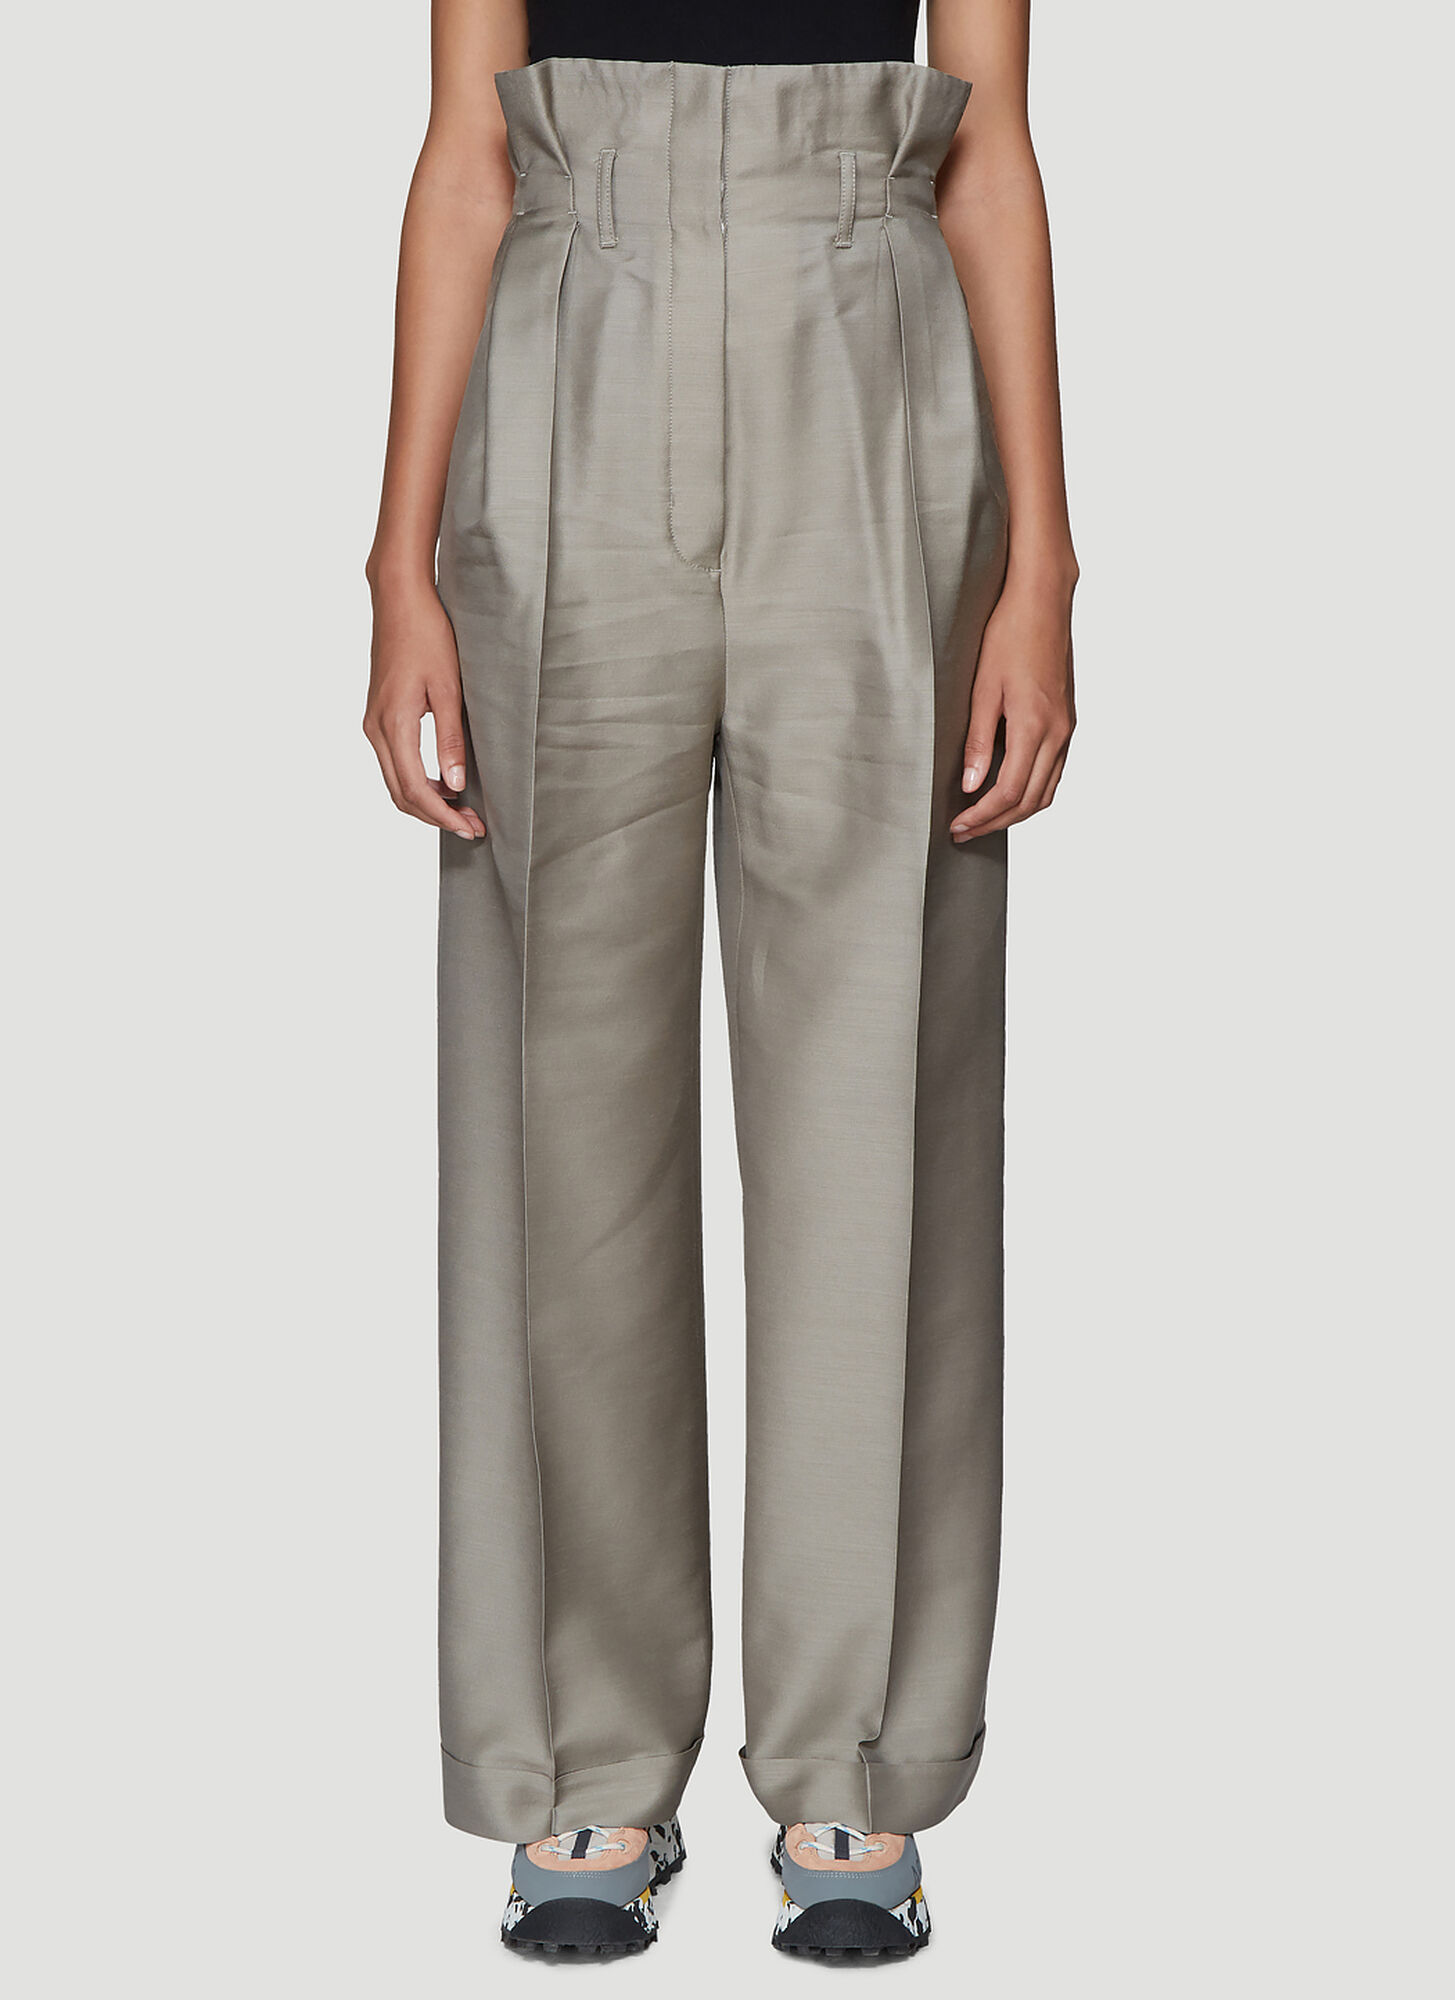 Acne Studios Perrie High-Waisted Twill Pants in Beige